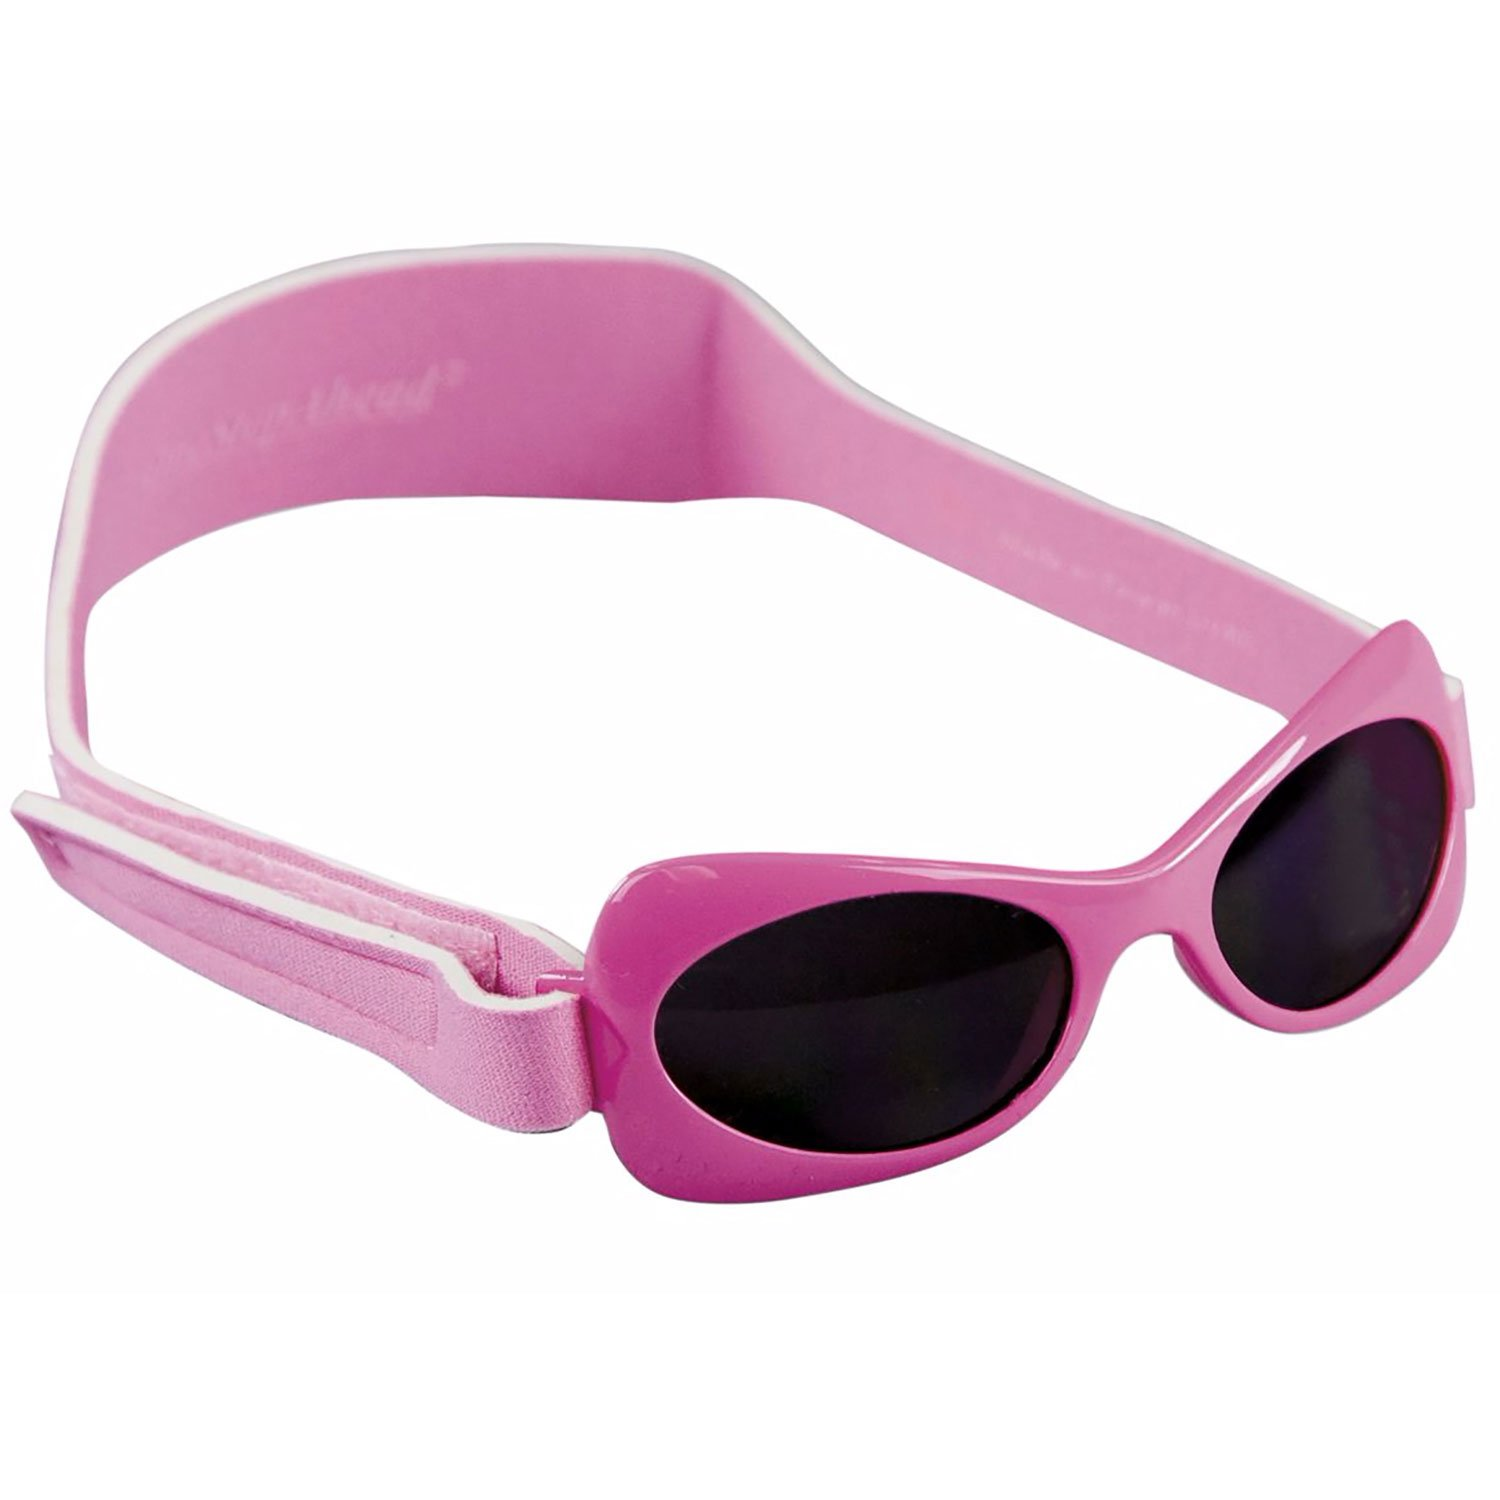 Pink Wrap Sunglasses for Toddler Girls Ages 2-5 Years by Sun Smarties by One Step Ahead